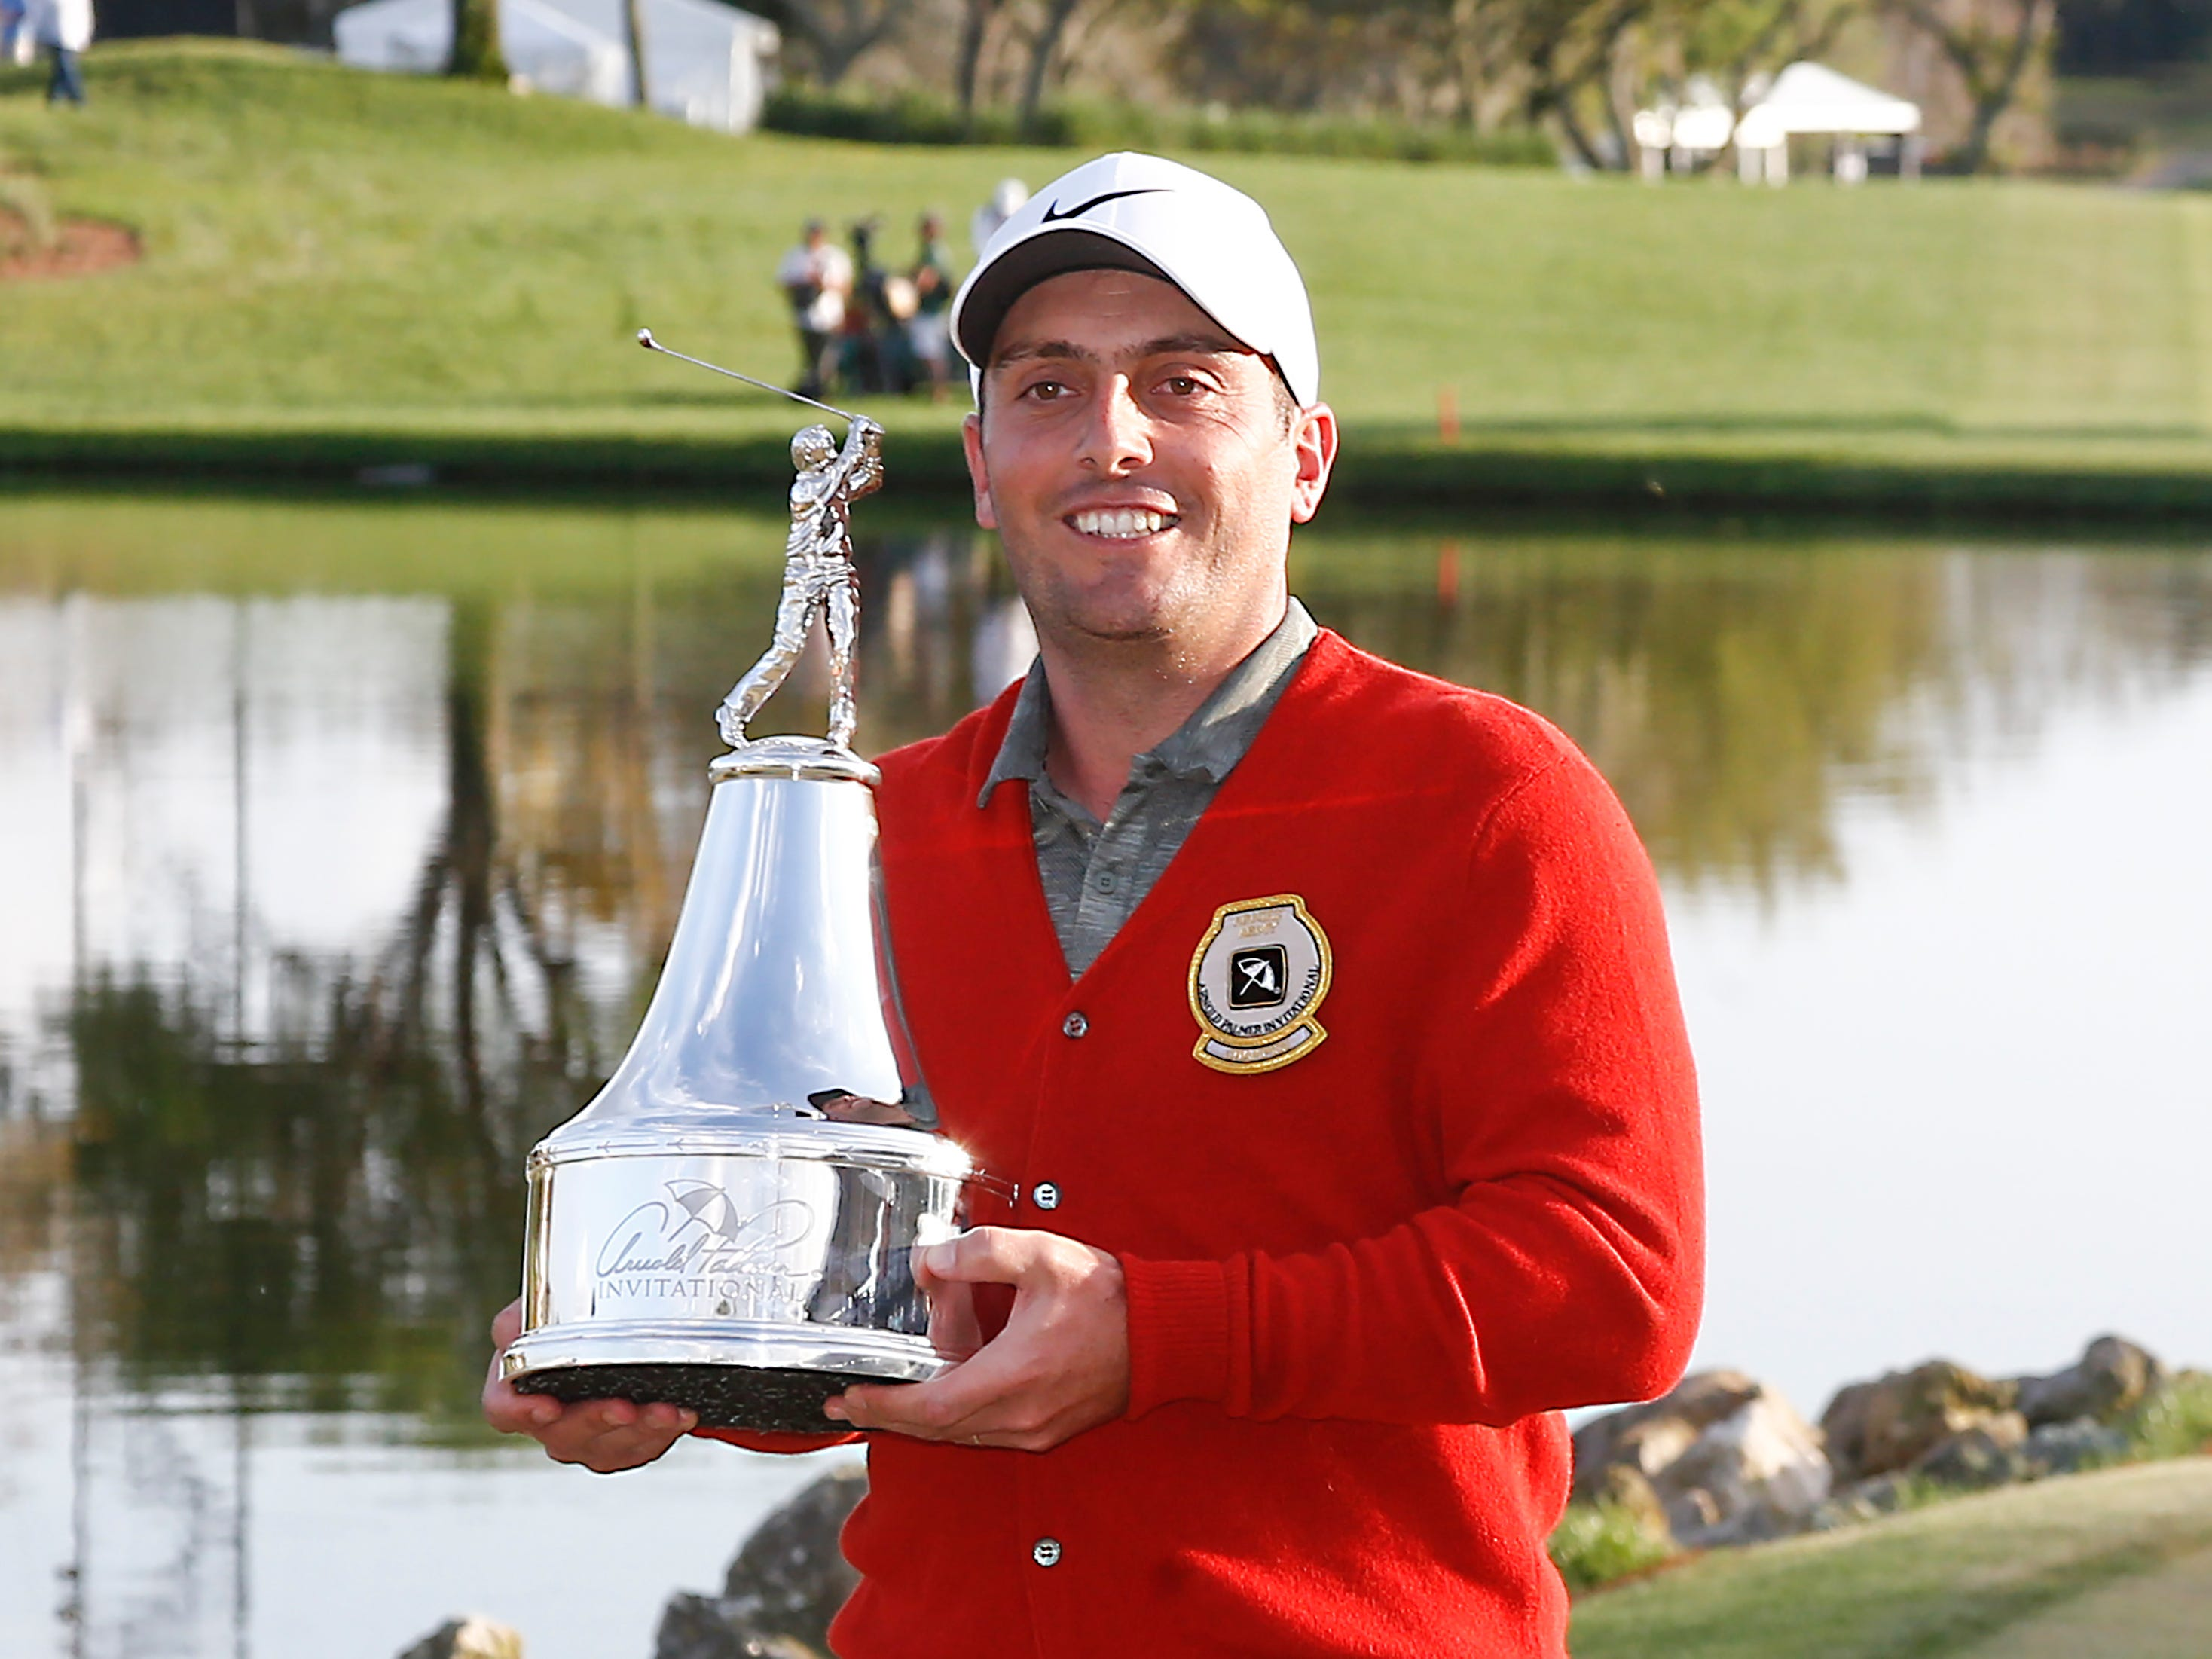 March 10:  Francesco Molinari celebrates his third career PGA Tour win at the 2019 Arnold Palmer Invitational golf tournament at Bay Hill Club & Lodge in Orlando.